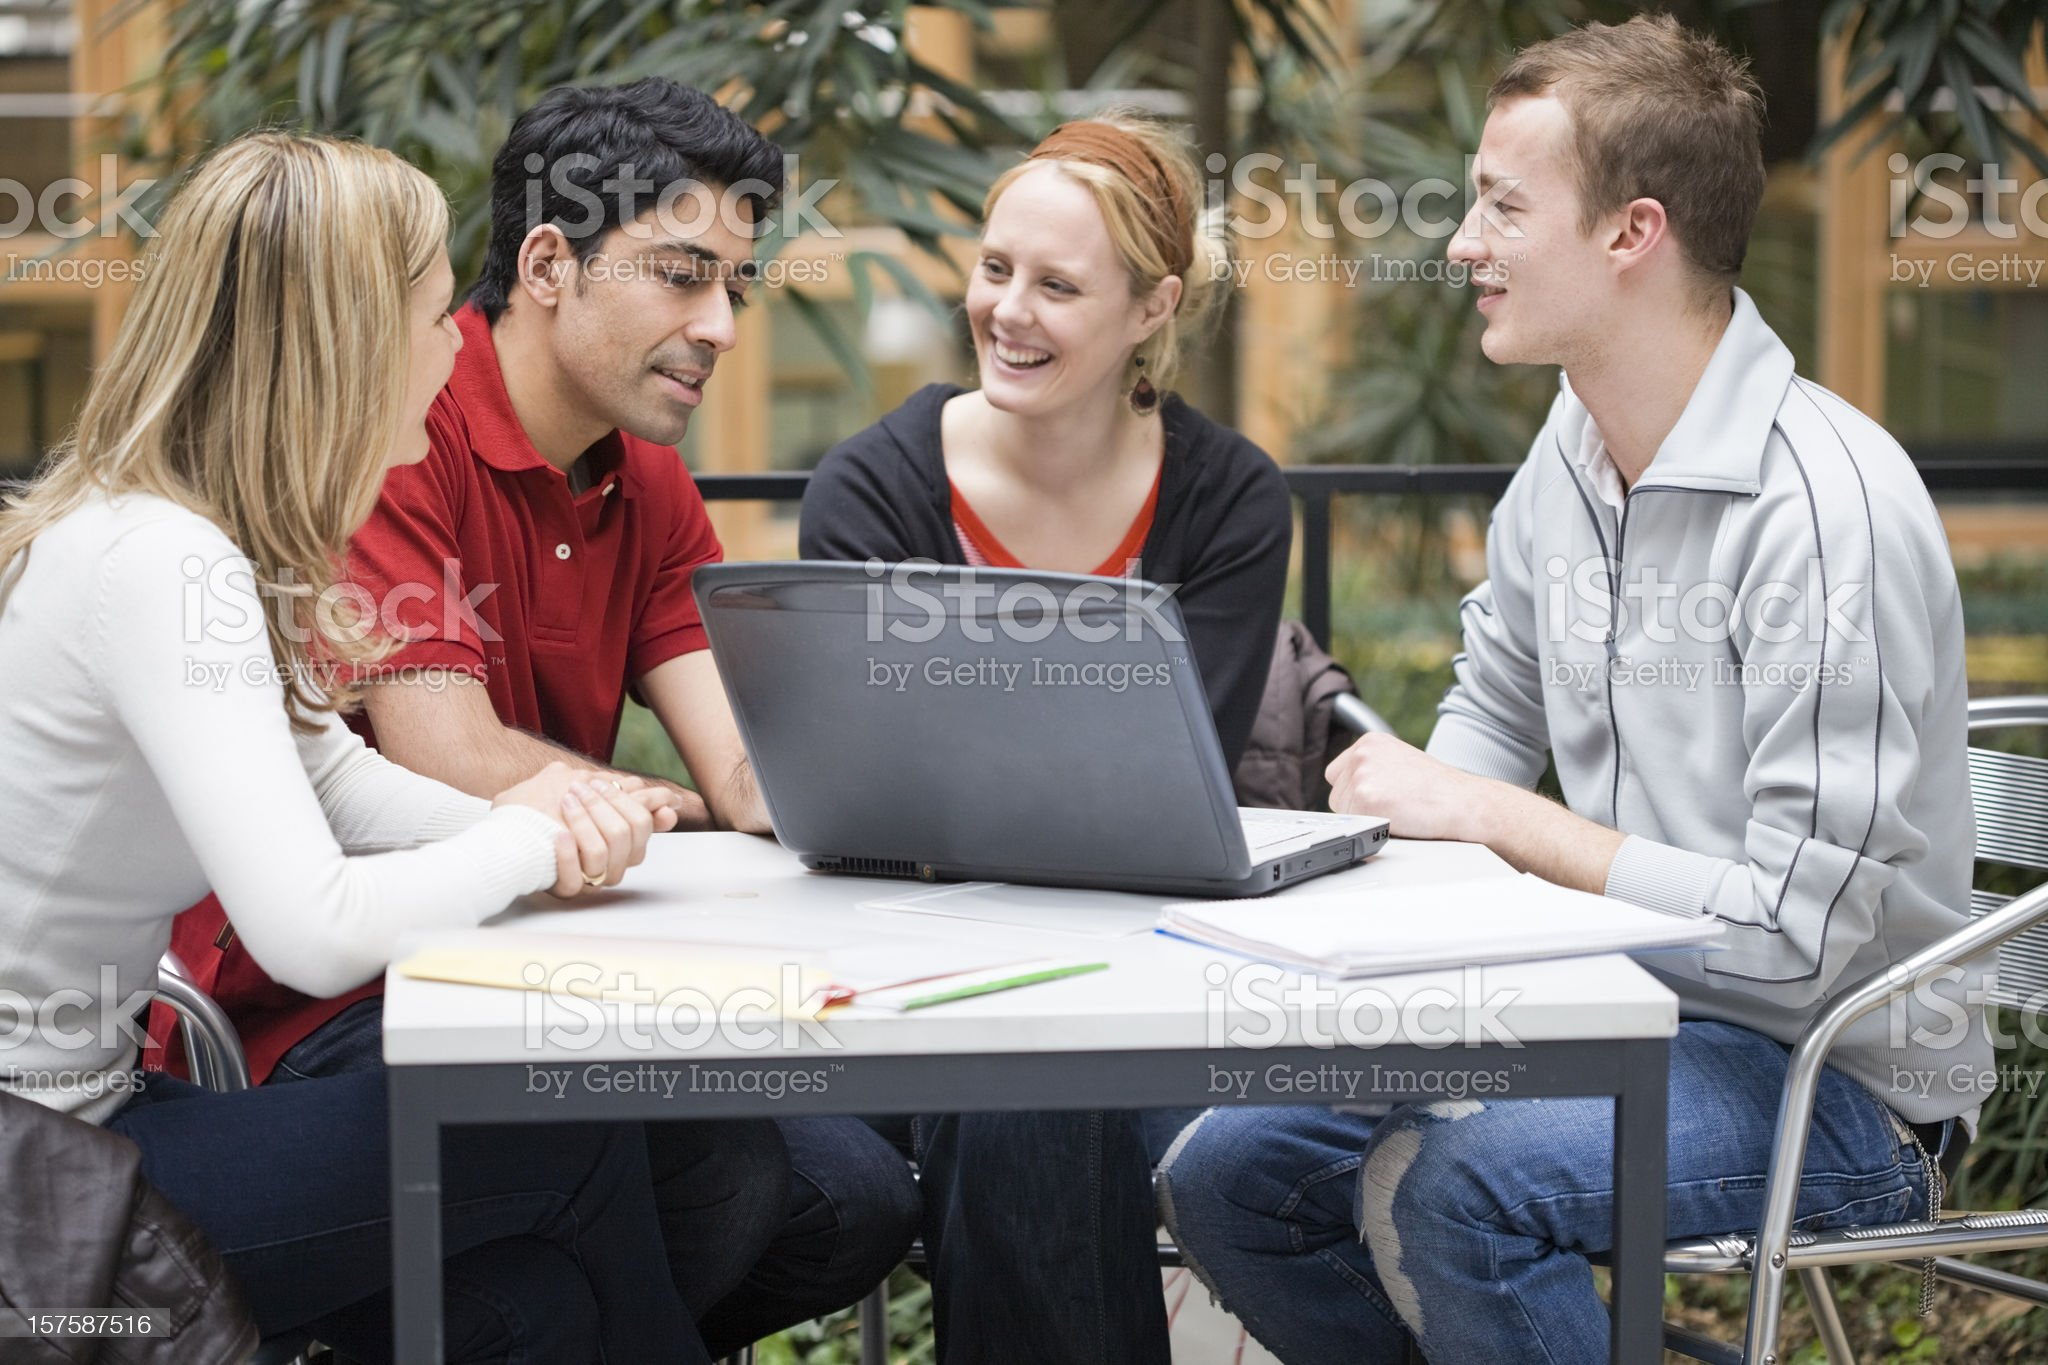 Group of four students in teamwork with laptop presentation royalty-free stock photo